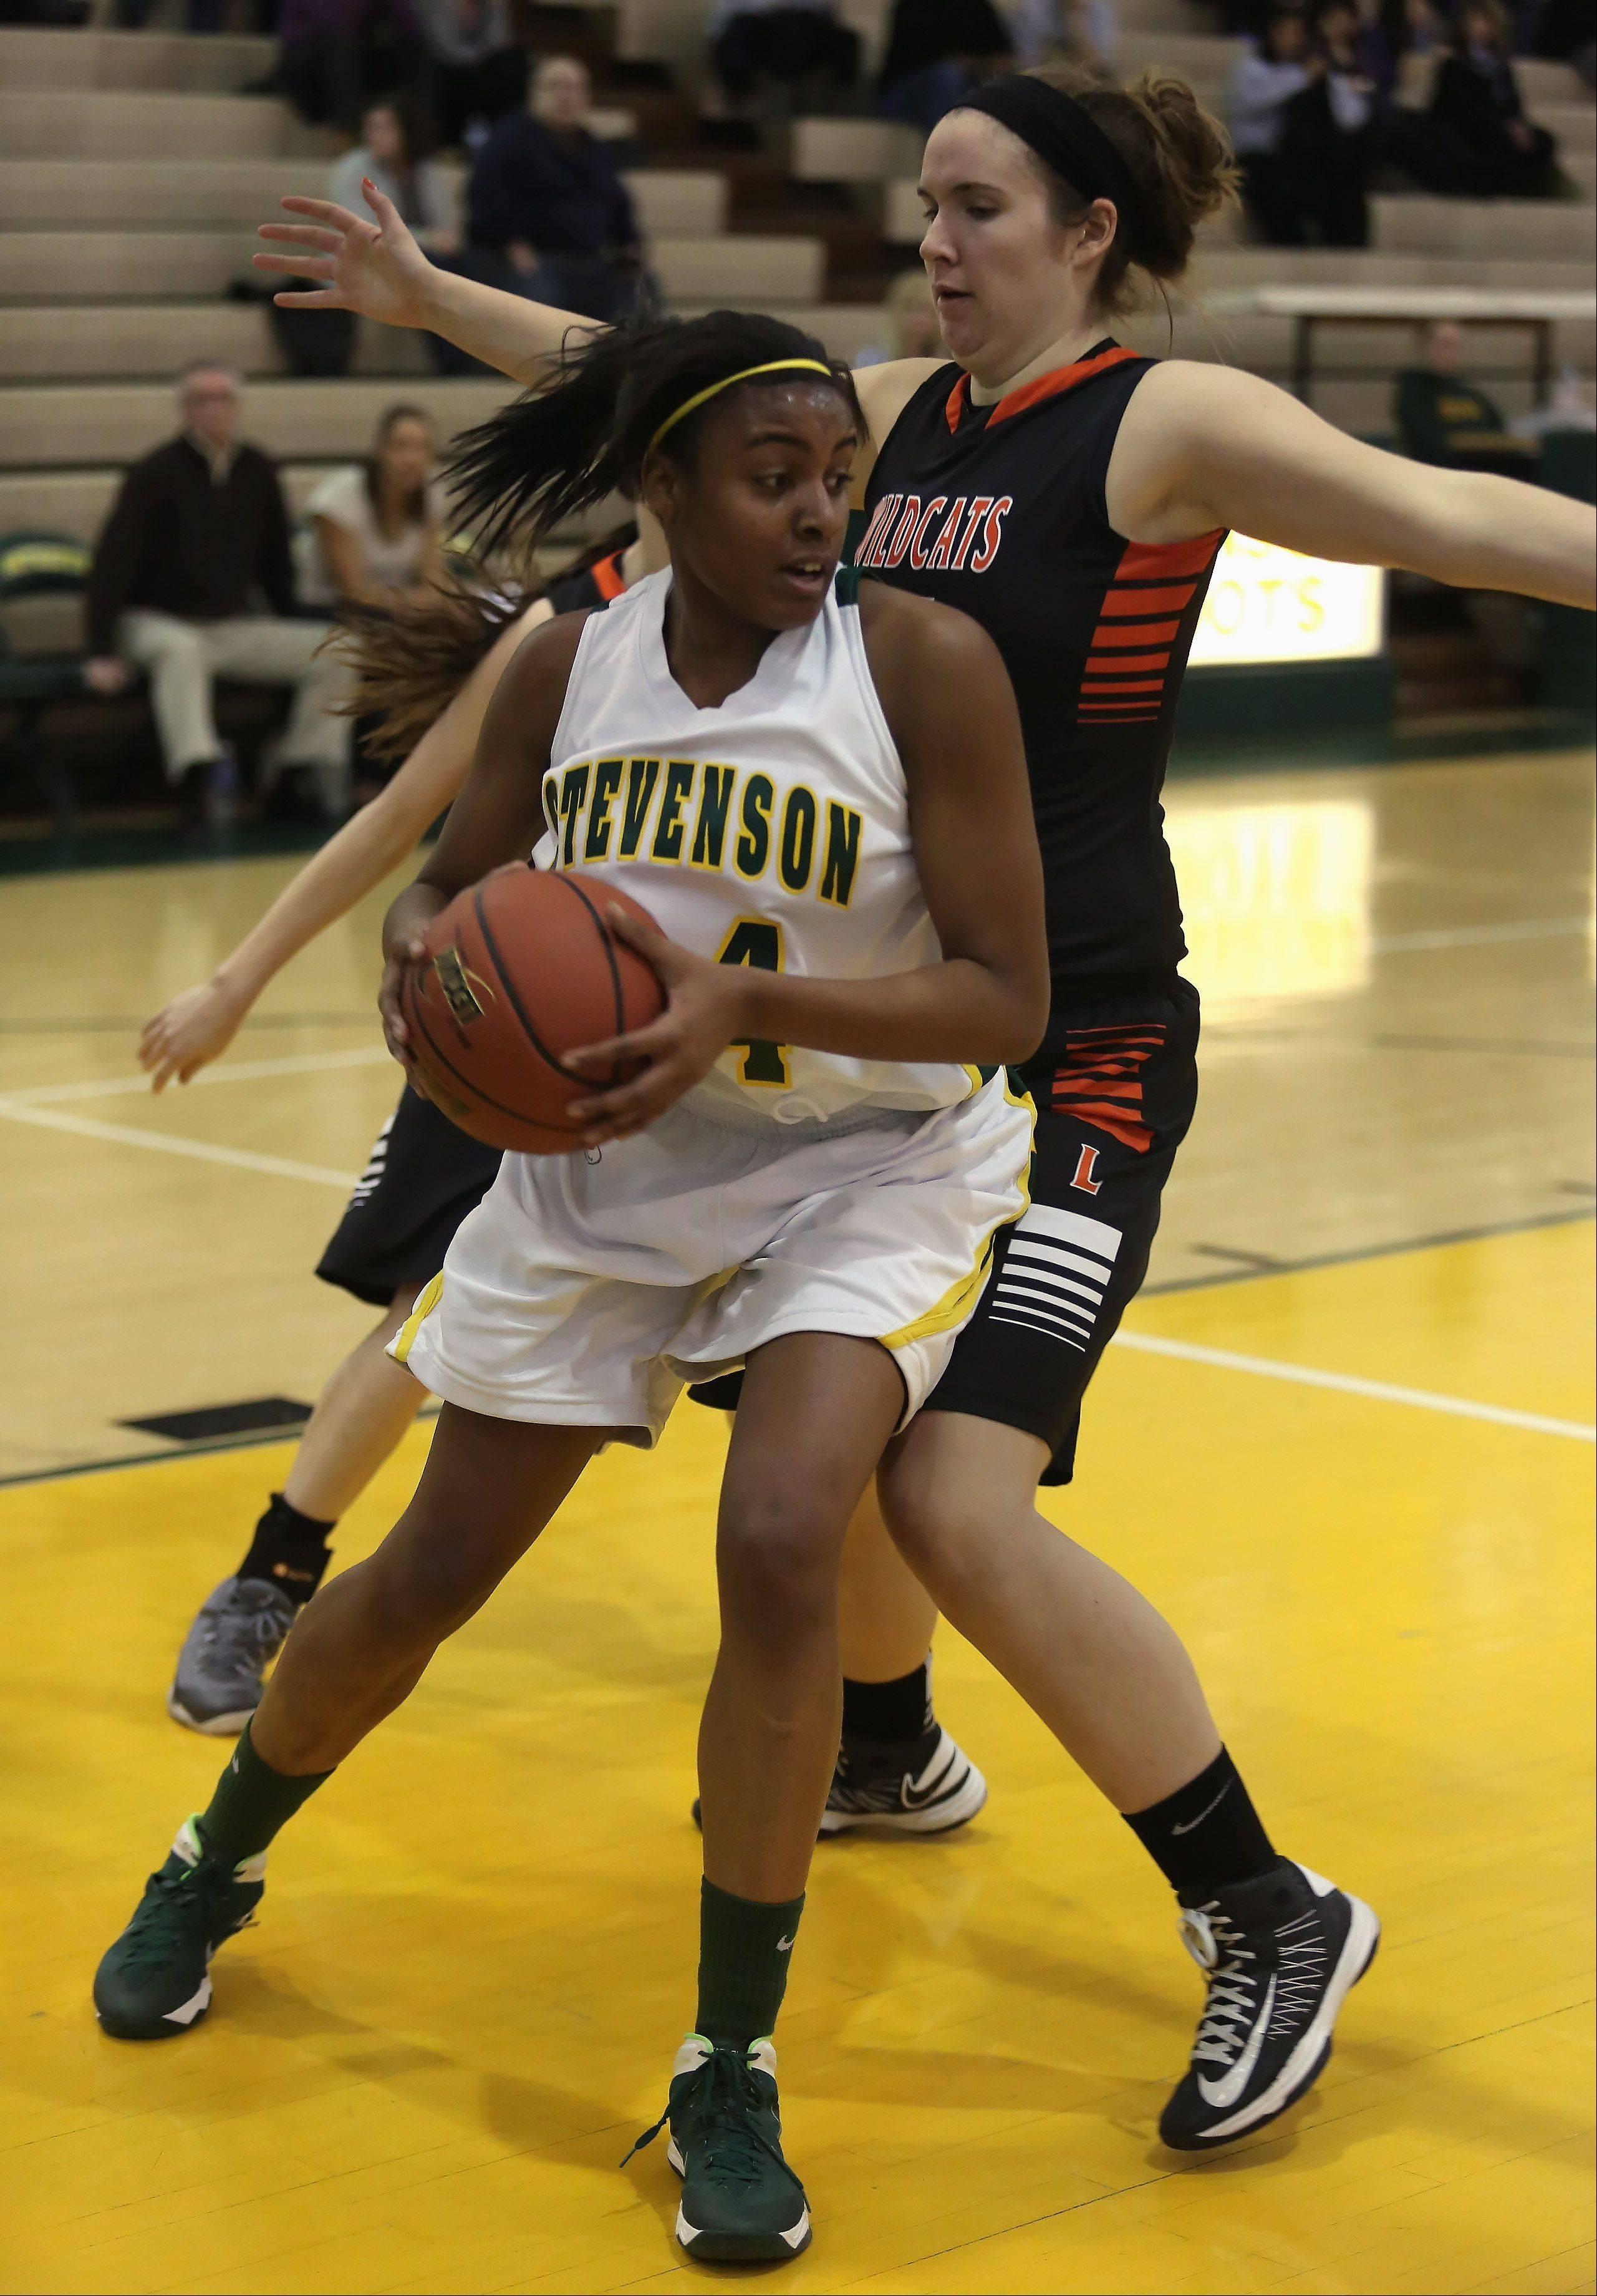 Stevenson forward Taylor Buford heads downcourt after taking a rebound away from Libertyville center Becky Deichl on Thursday at Stevenson.